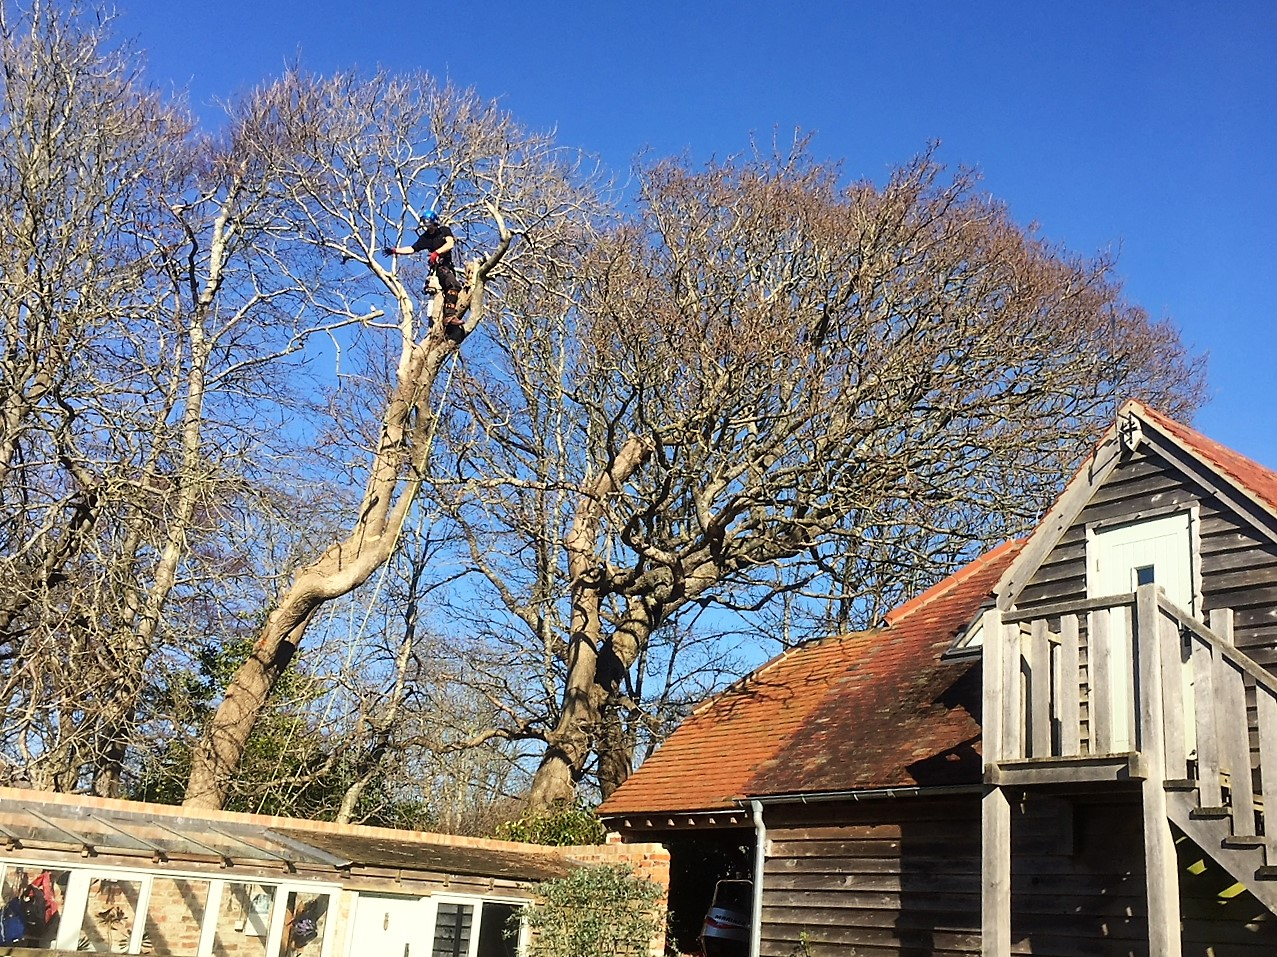 felling a large ash tree, tree felling in Weymouth, tree felling, ash tree, tree dismantling, Weymouth tree felling, tree safety work, dangerous tree